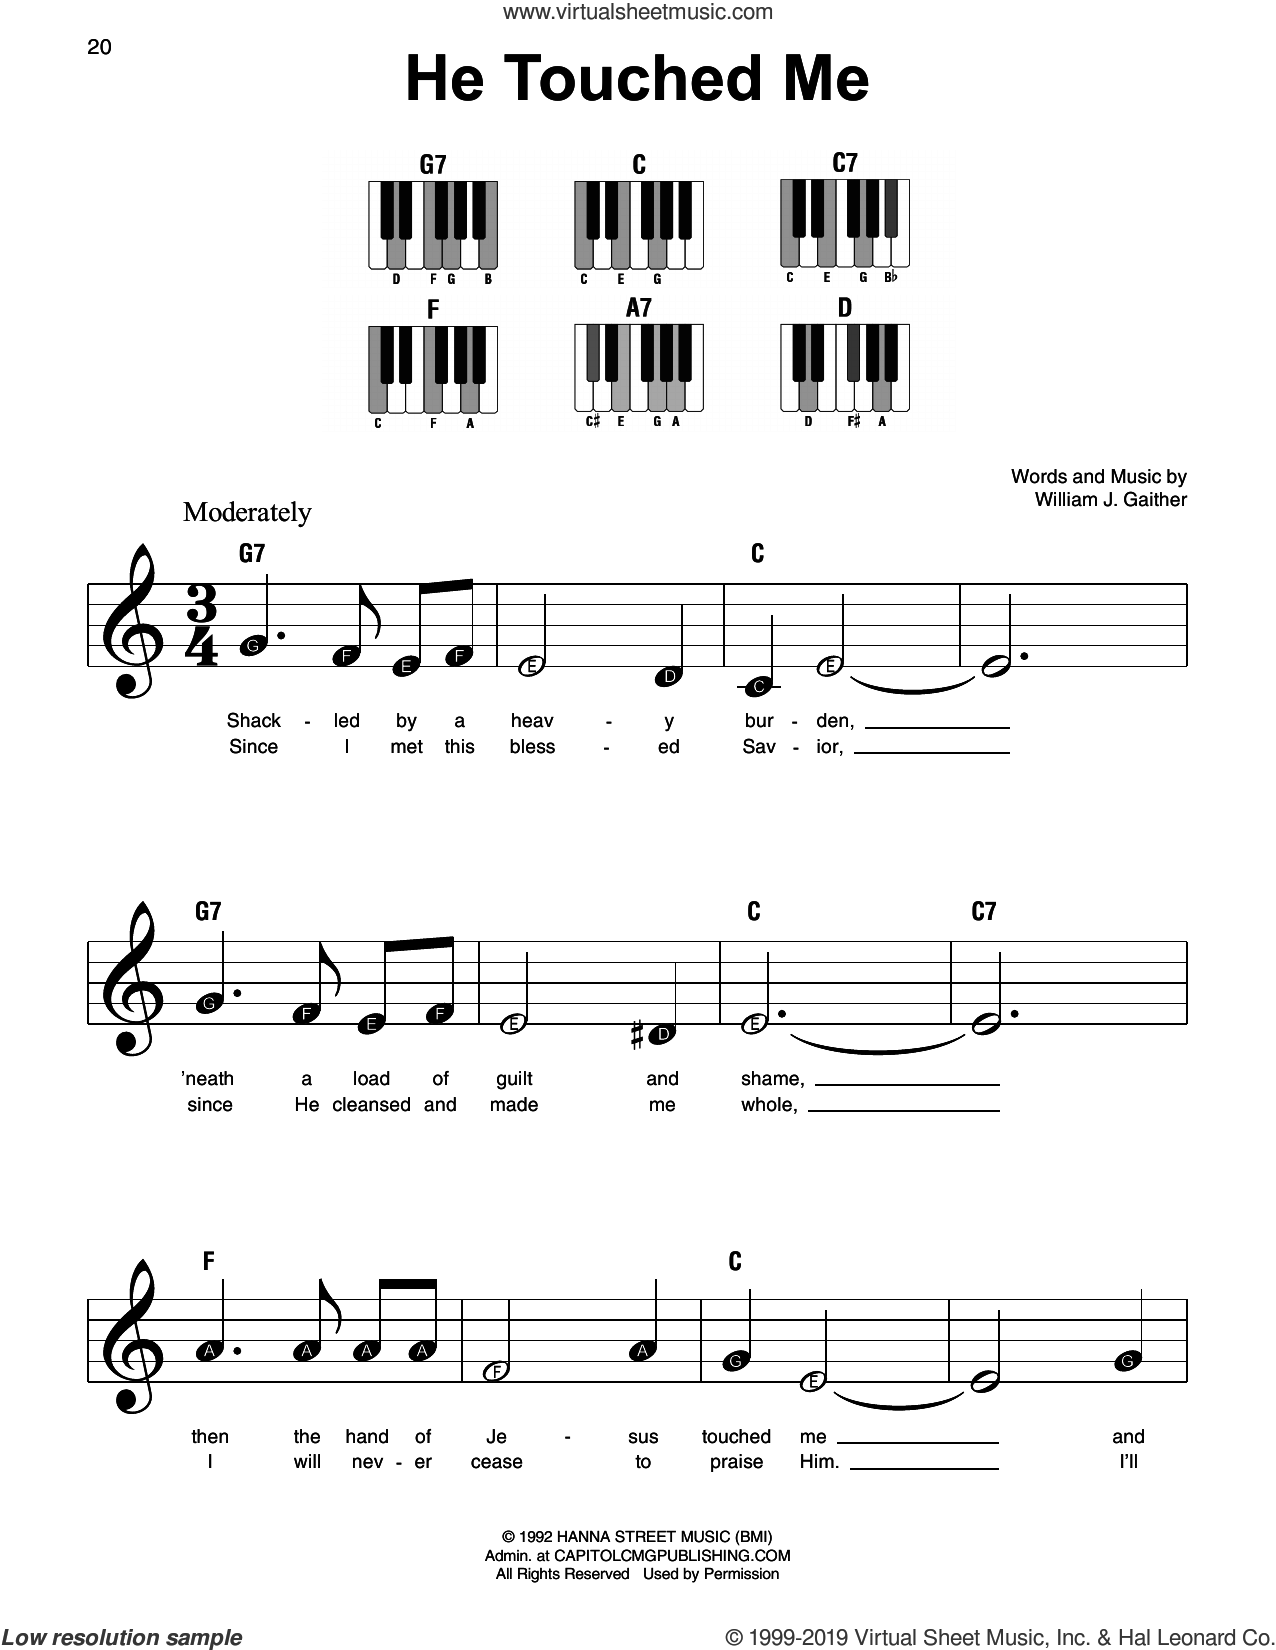 He Touched Me sheet music for piano solo by William J. Gaither, beginner skill level